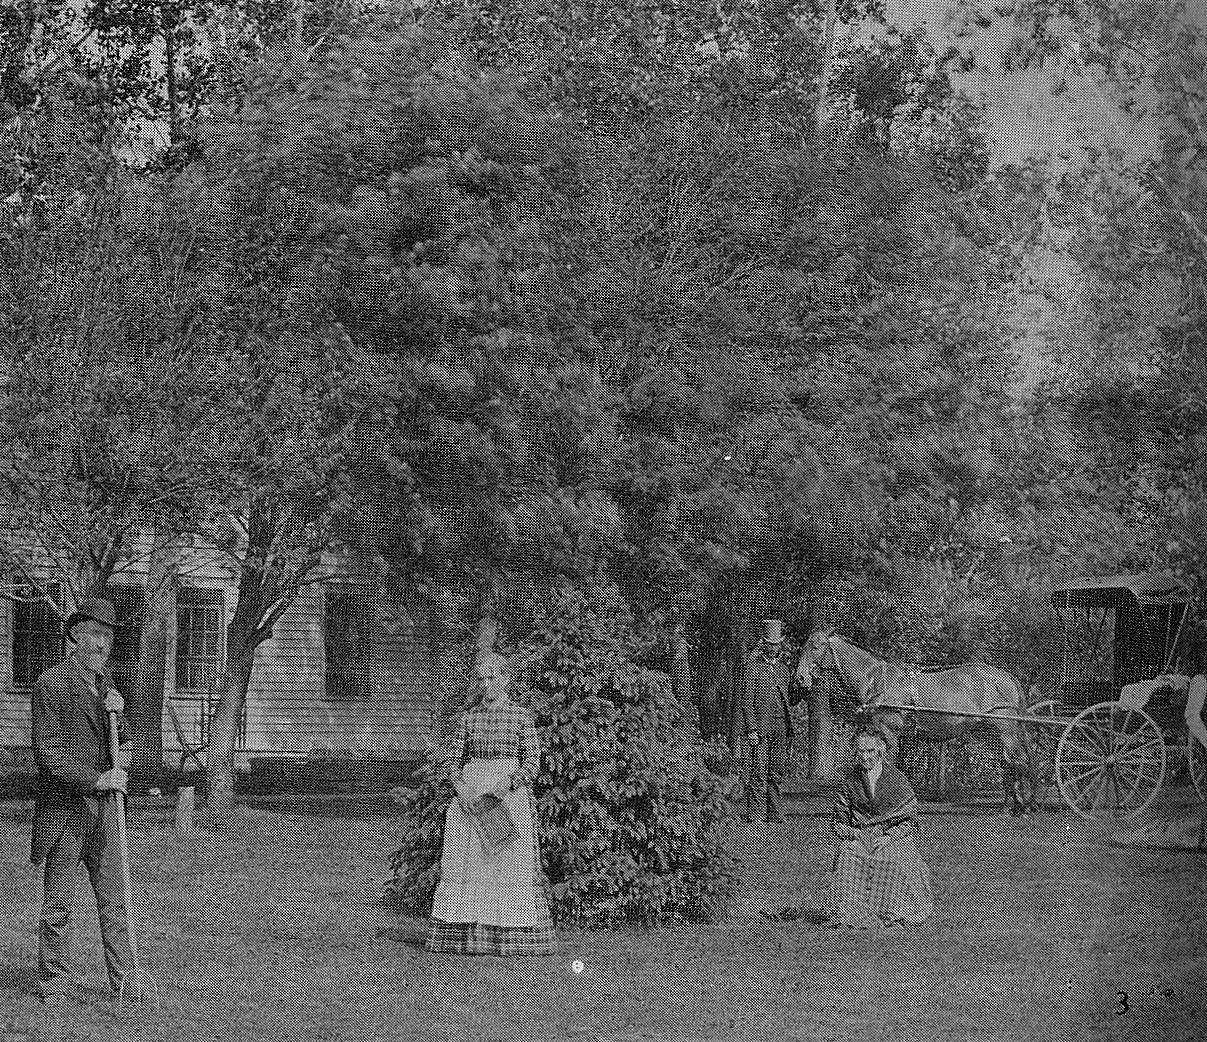 James M Sterling and his family at their farm which later became the site of The Sterling Shopping Center Austin, Mn